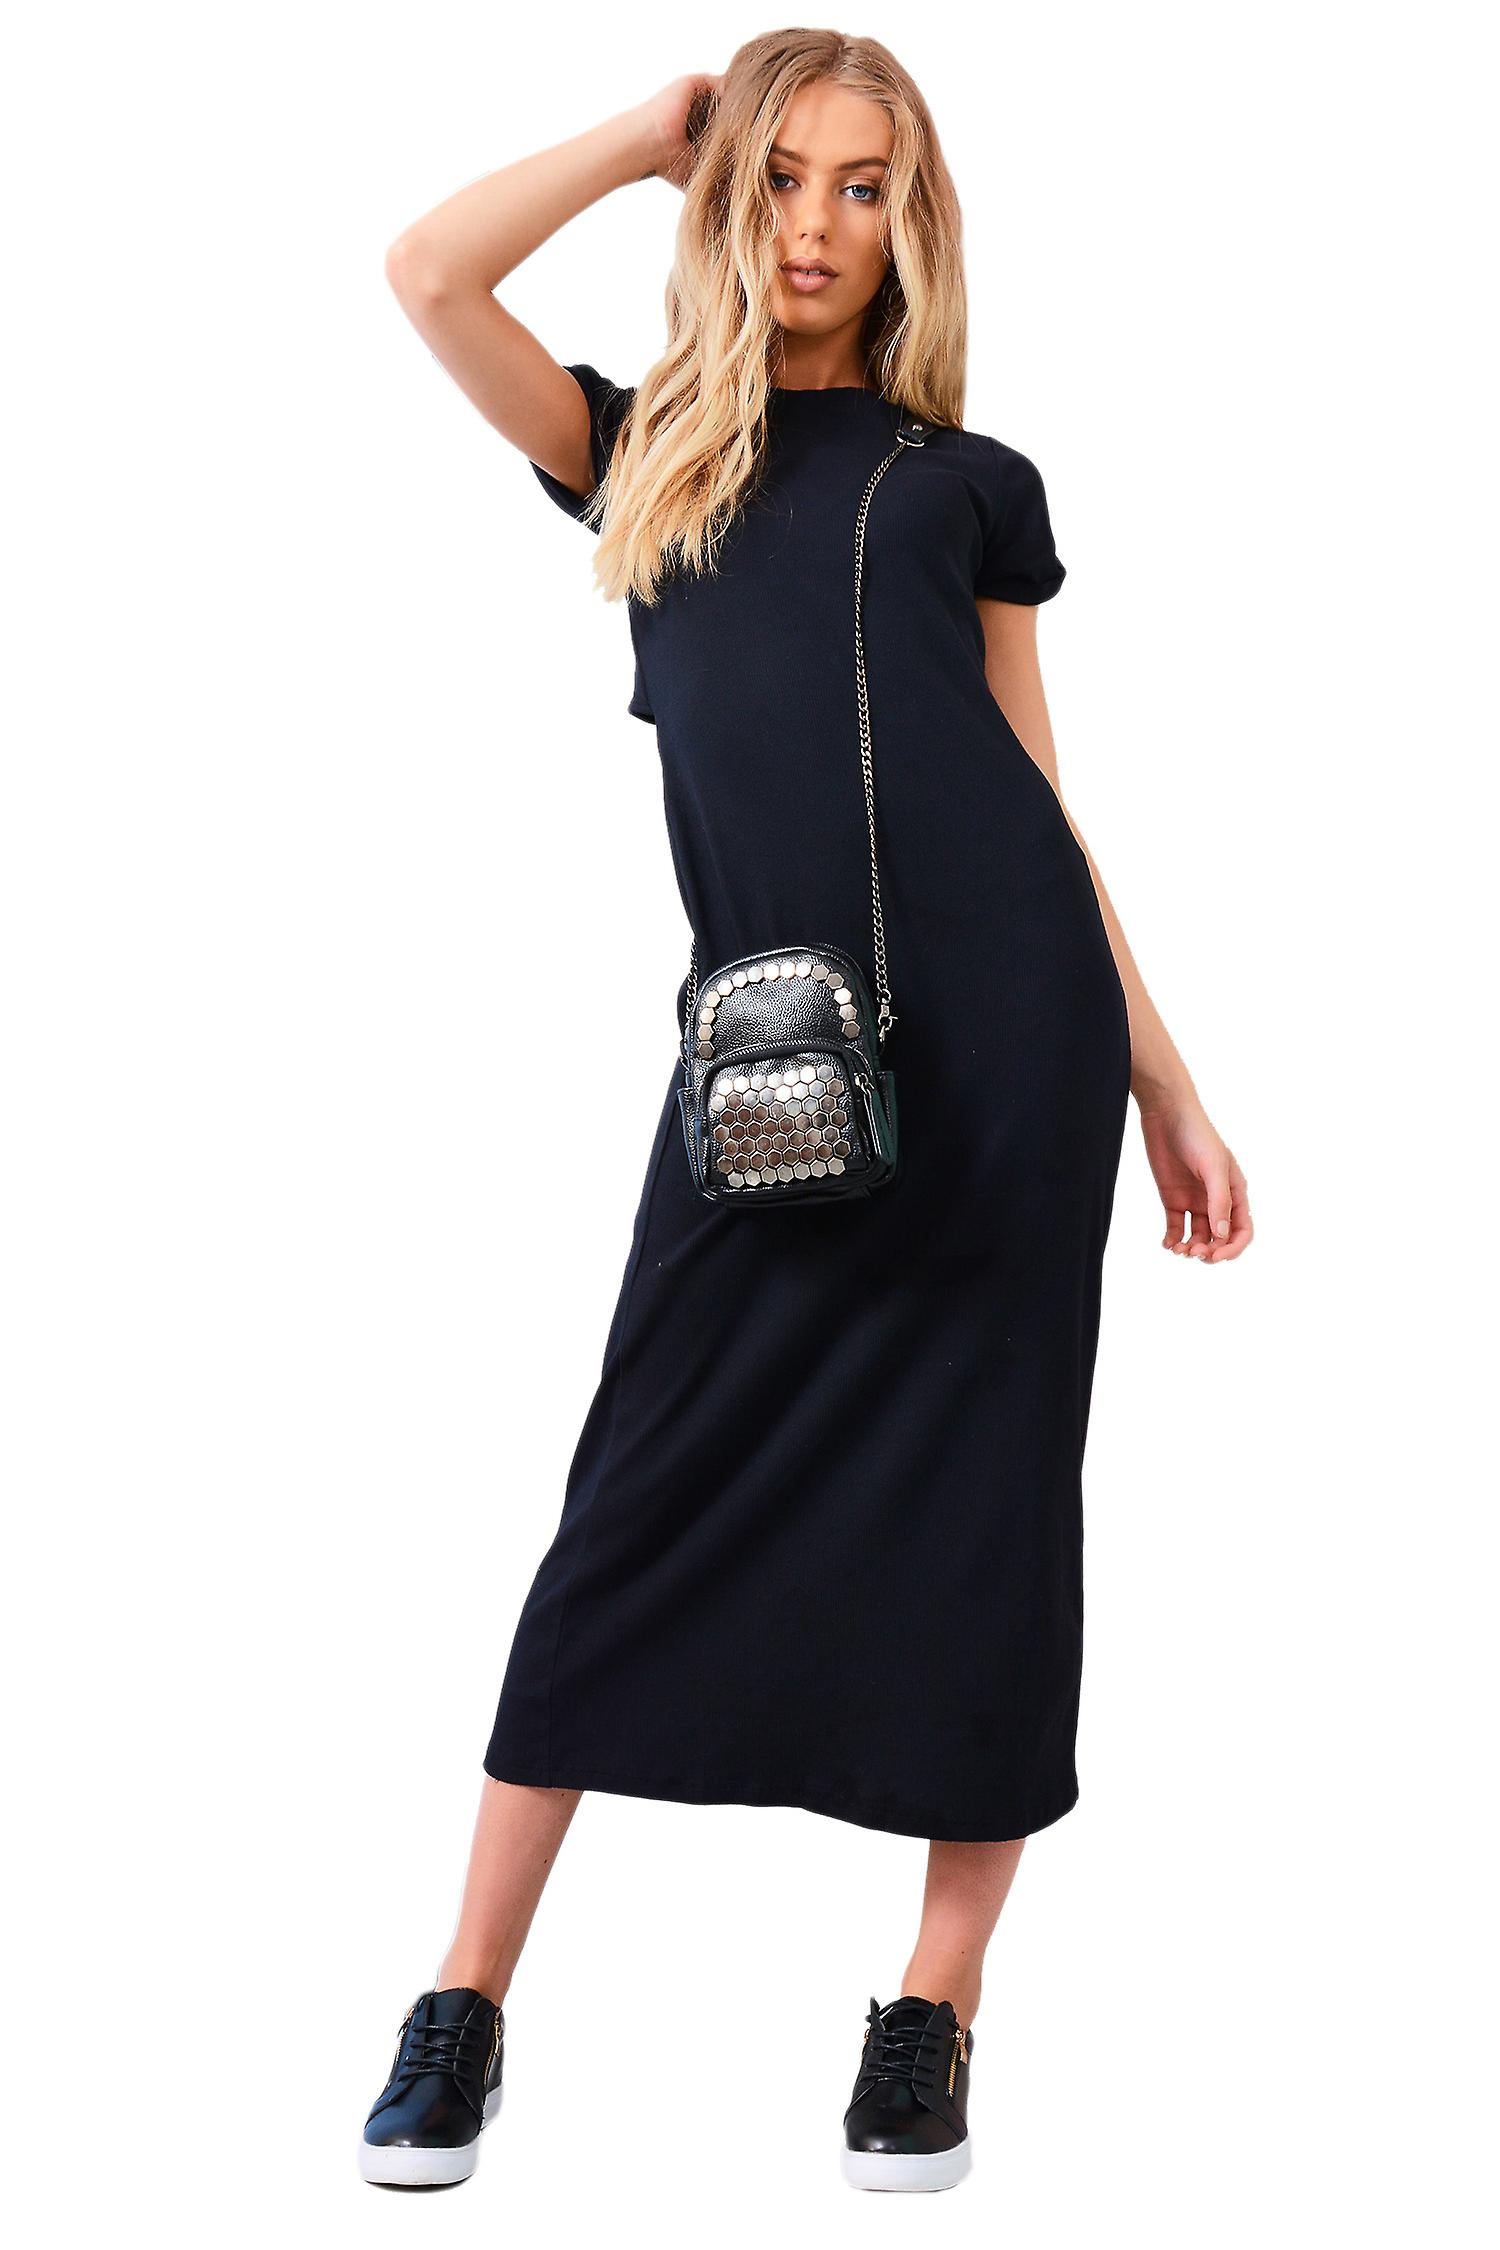 Lovemystyle Black Maxi Dress With Mid Twist And Short Sleeves